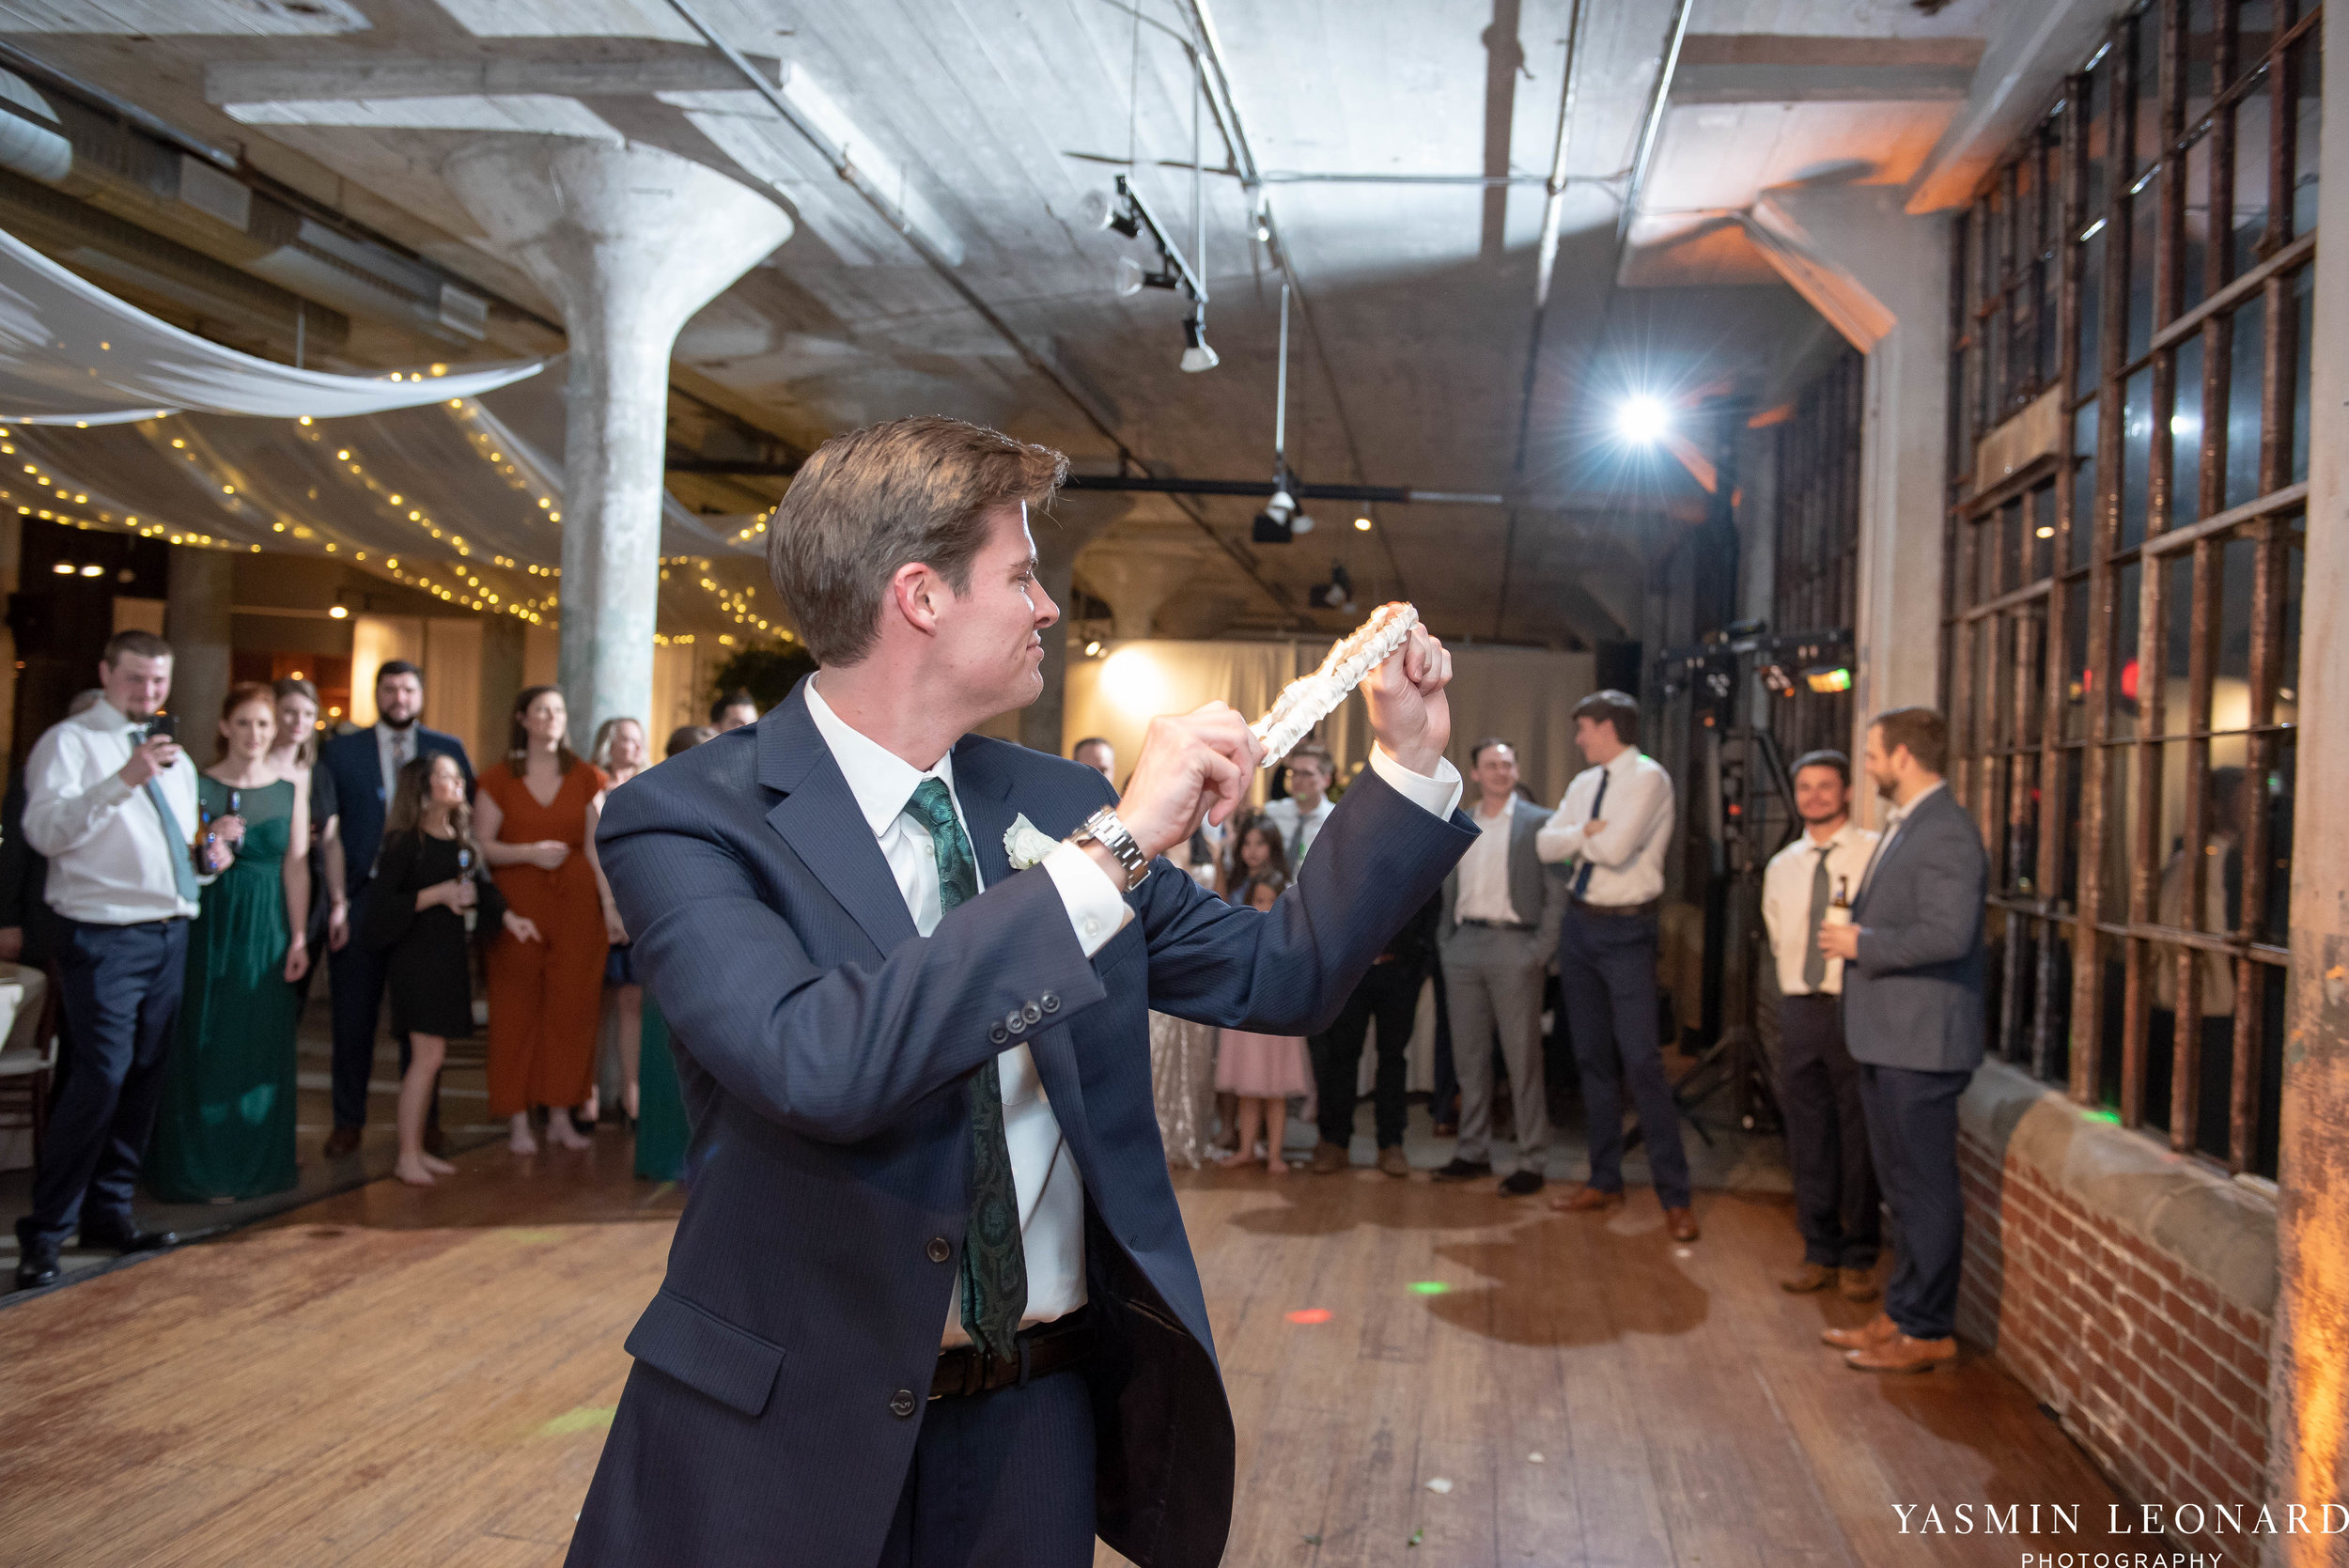 The Lofts at Union Square - Unions - High Point Weddings - NC Weddings - NC Wedding Photographer - Yasmin Leonard Photography - Just Priceless - Green Pink and Gold Wedding - Elegant Wedding-53.jpg